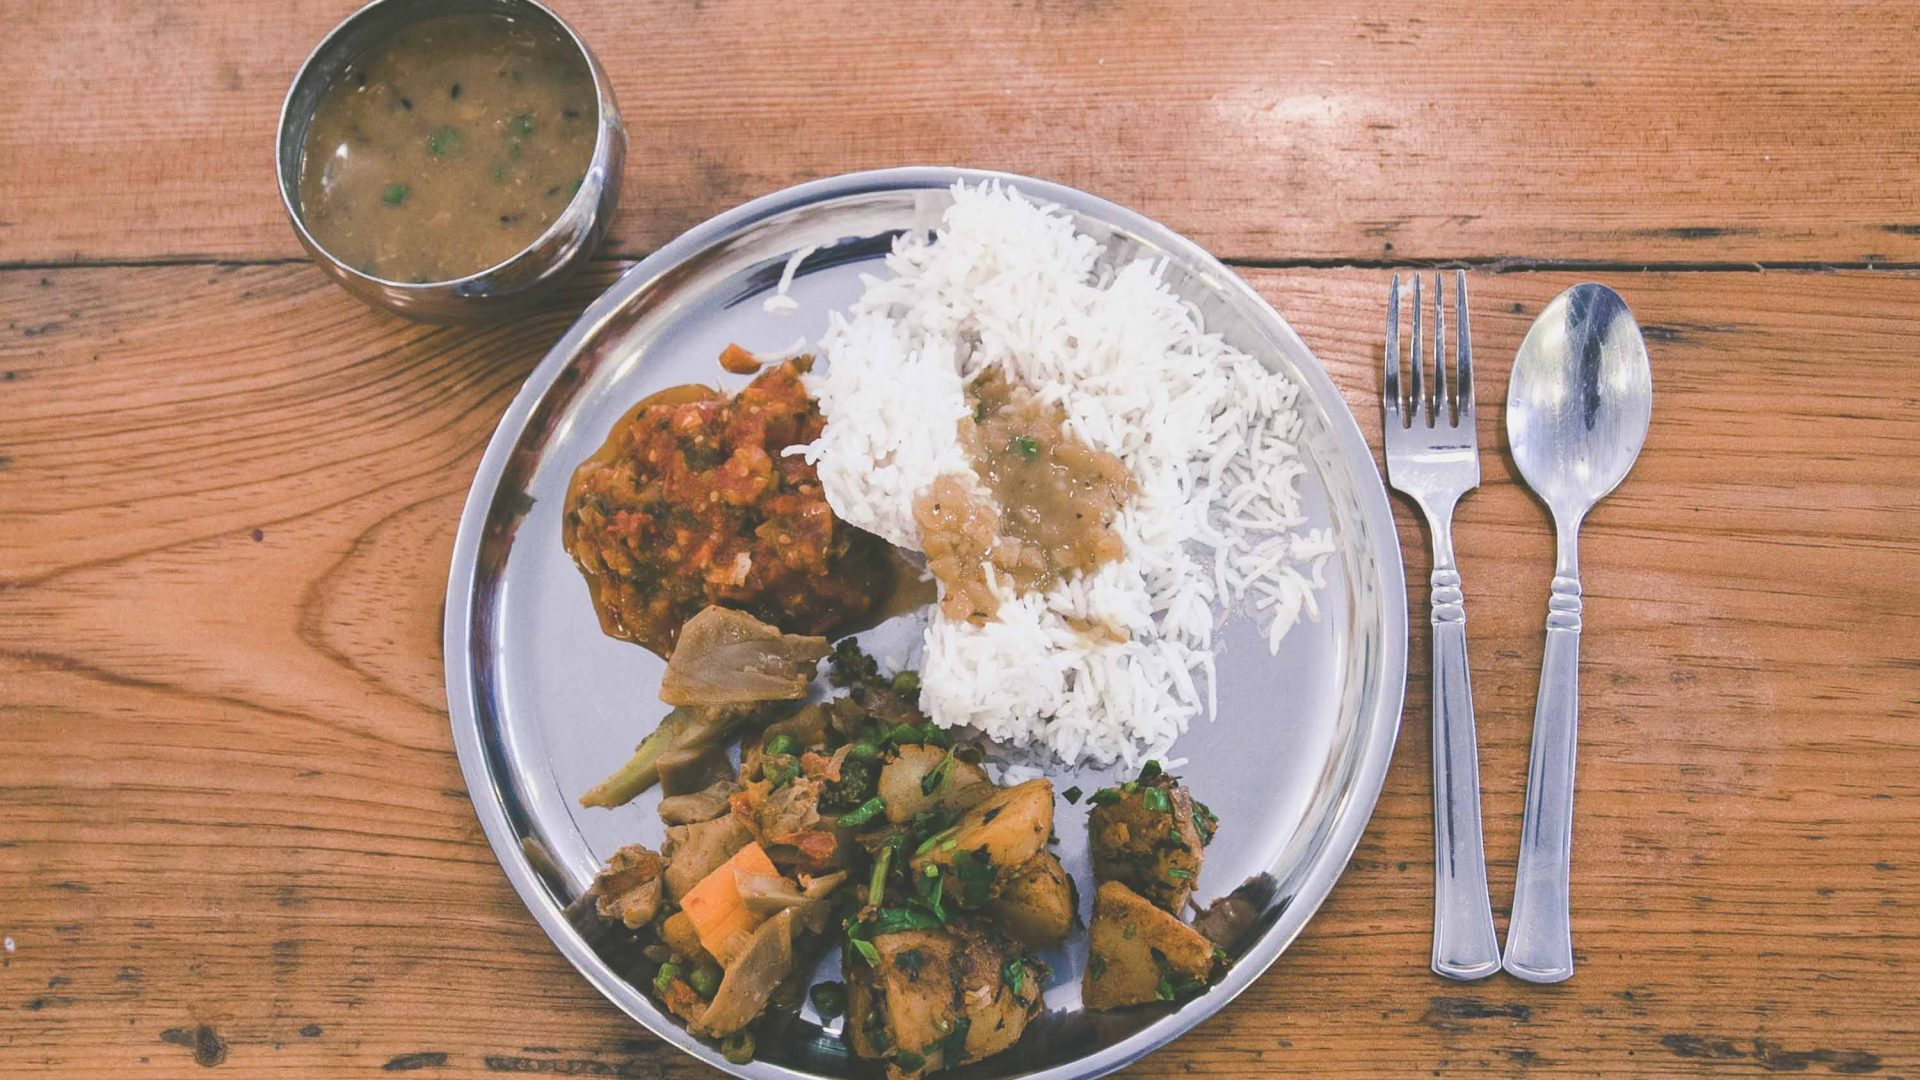 Dal Bhat, a typical Nepalese dish is prepared at Seven Women in Nepal.